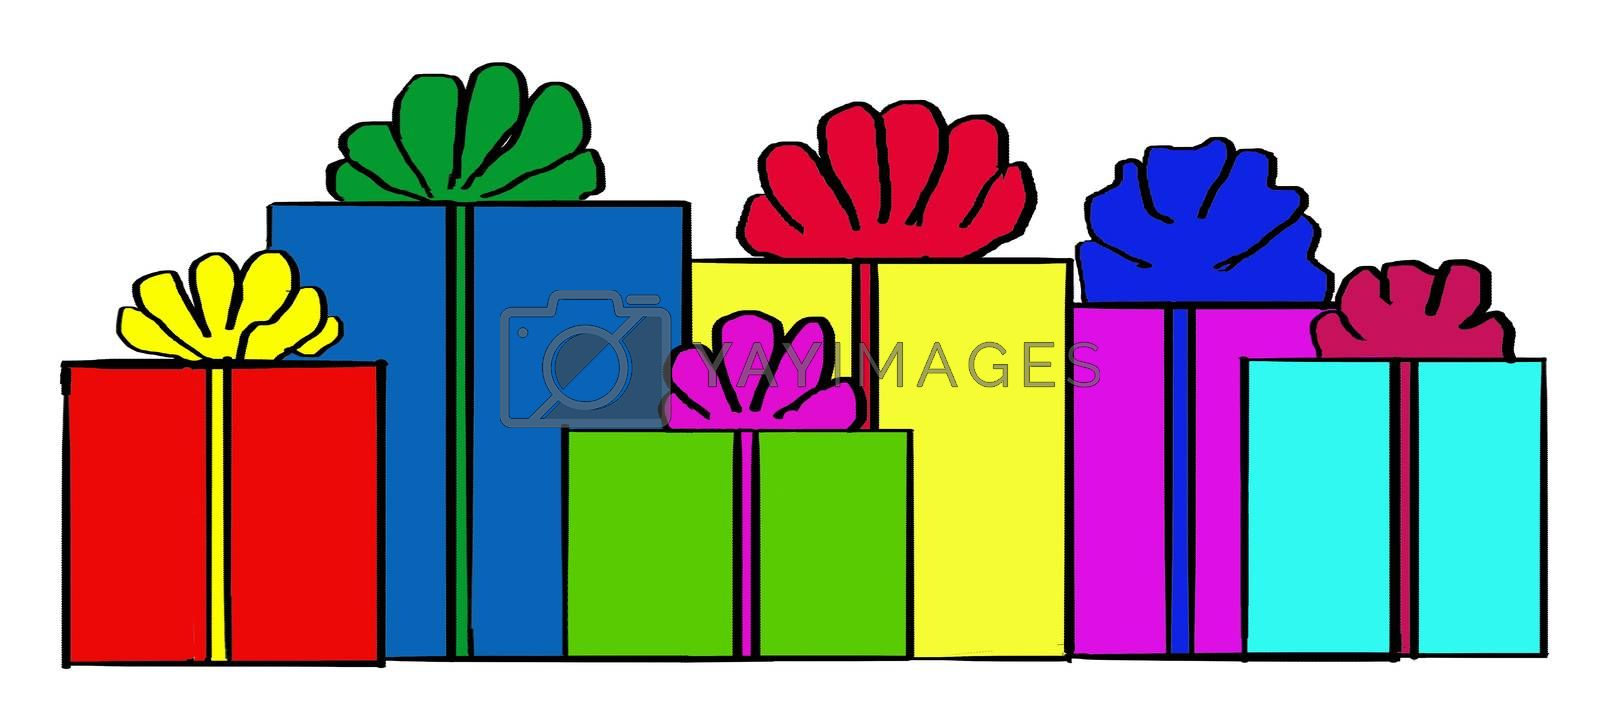 The picture shows the New Year's gifts